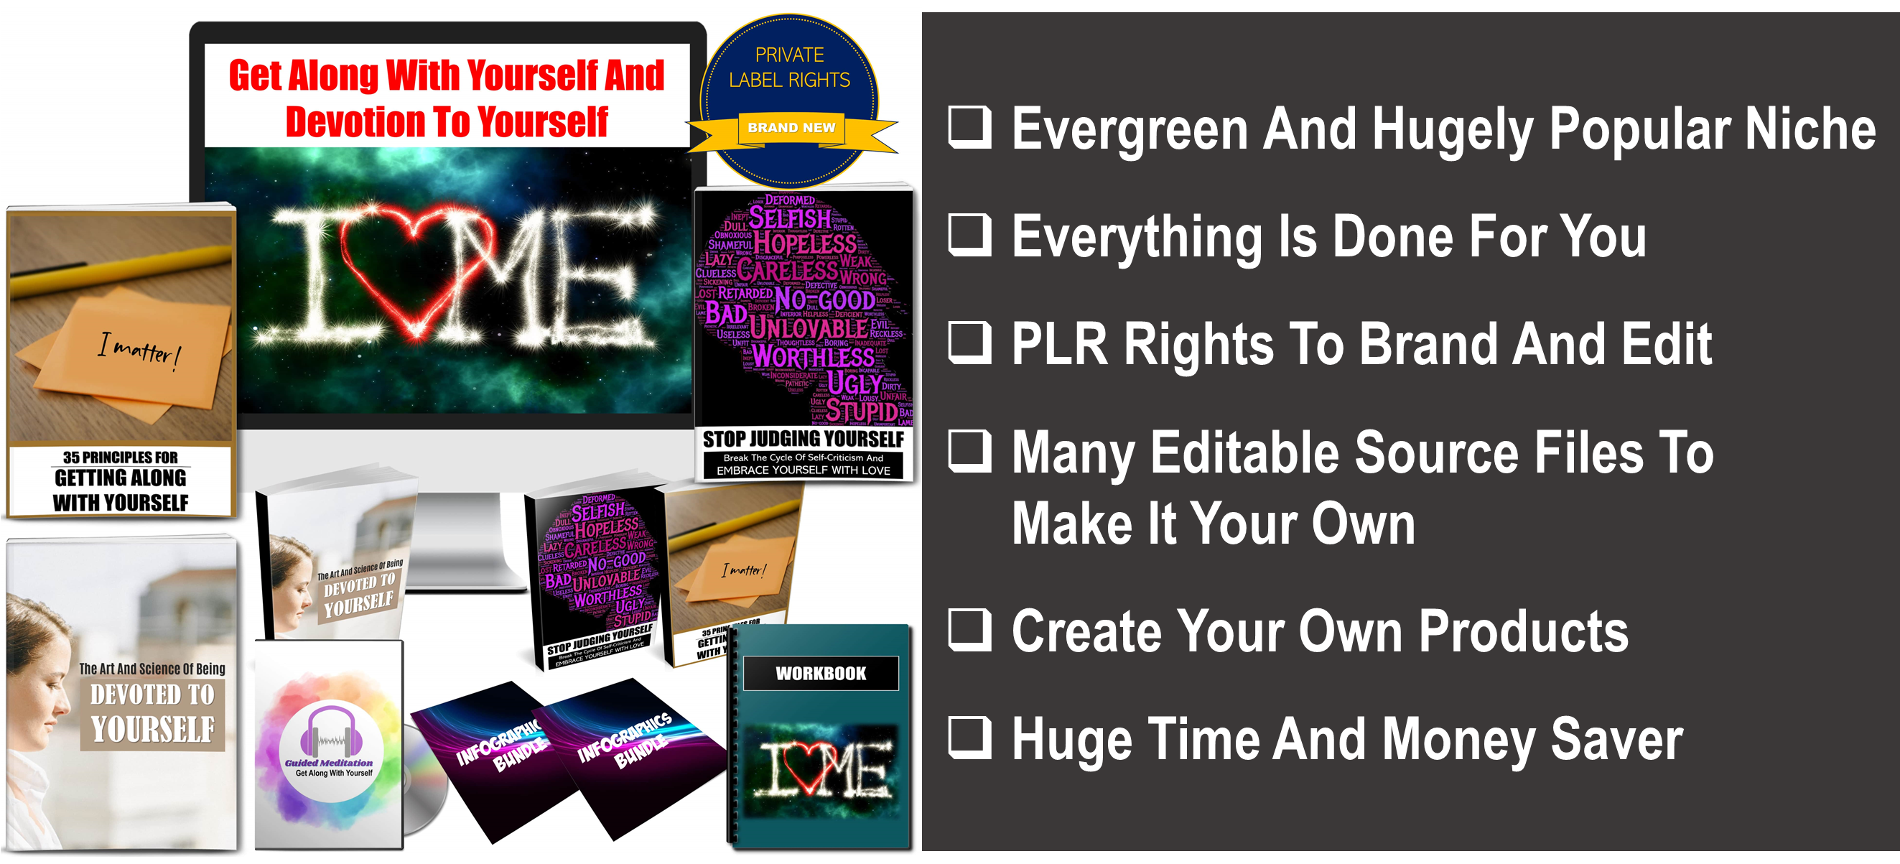 Get Along With Yourself And Devotion To Yourself Giant PLR